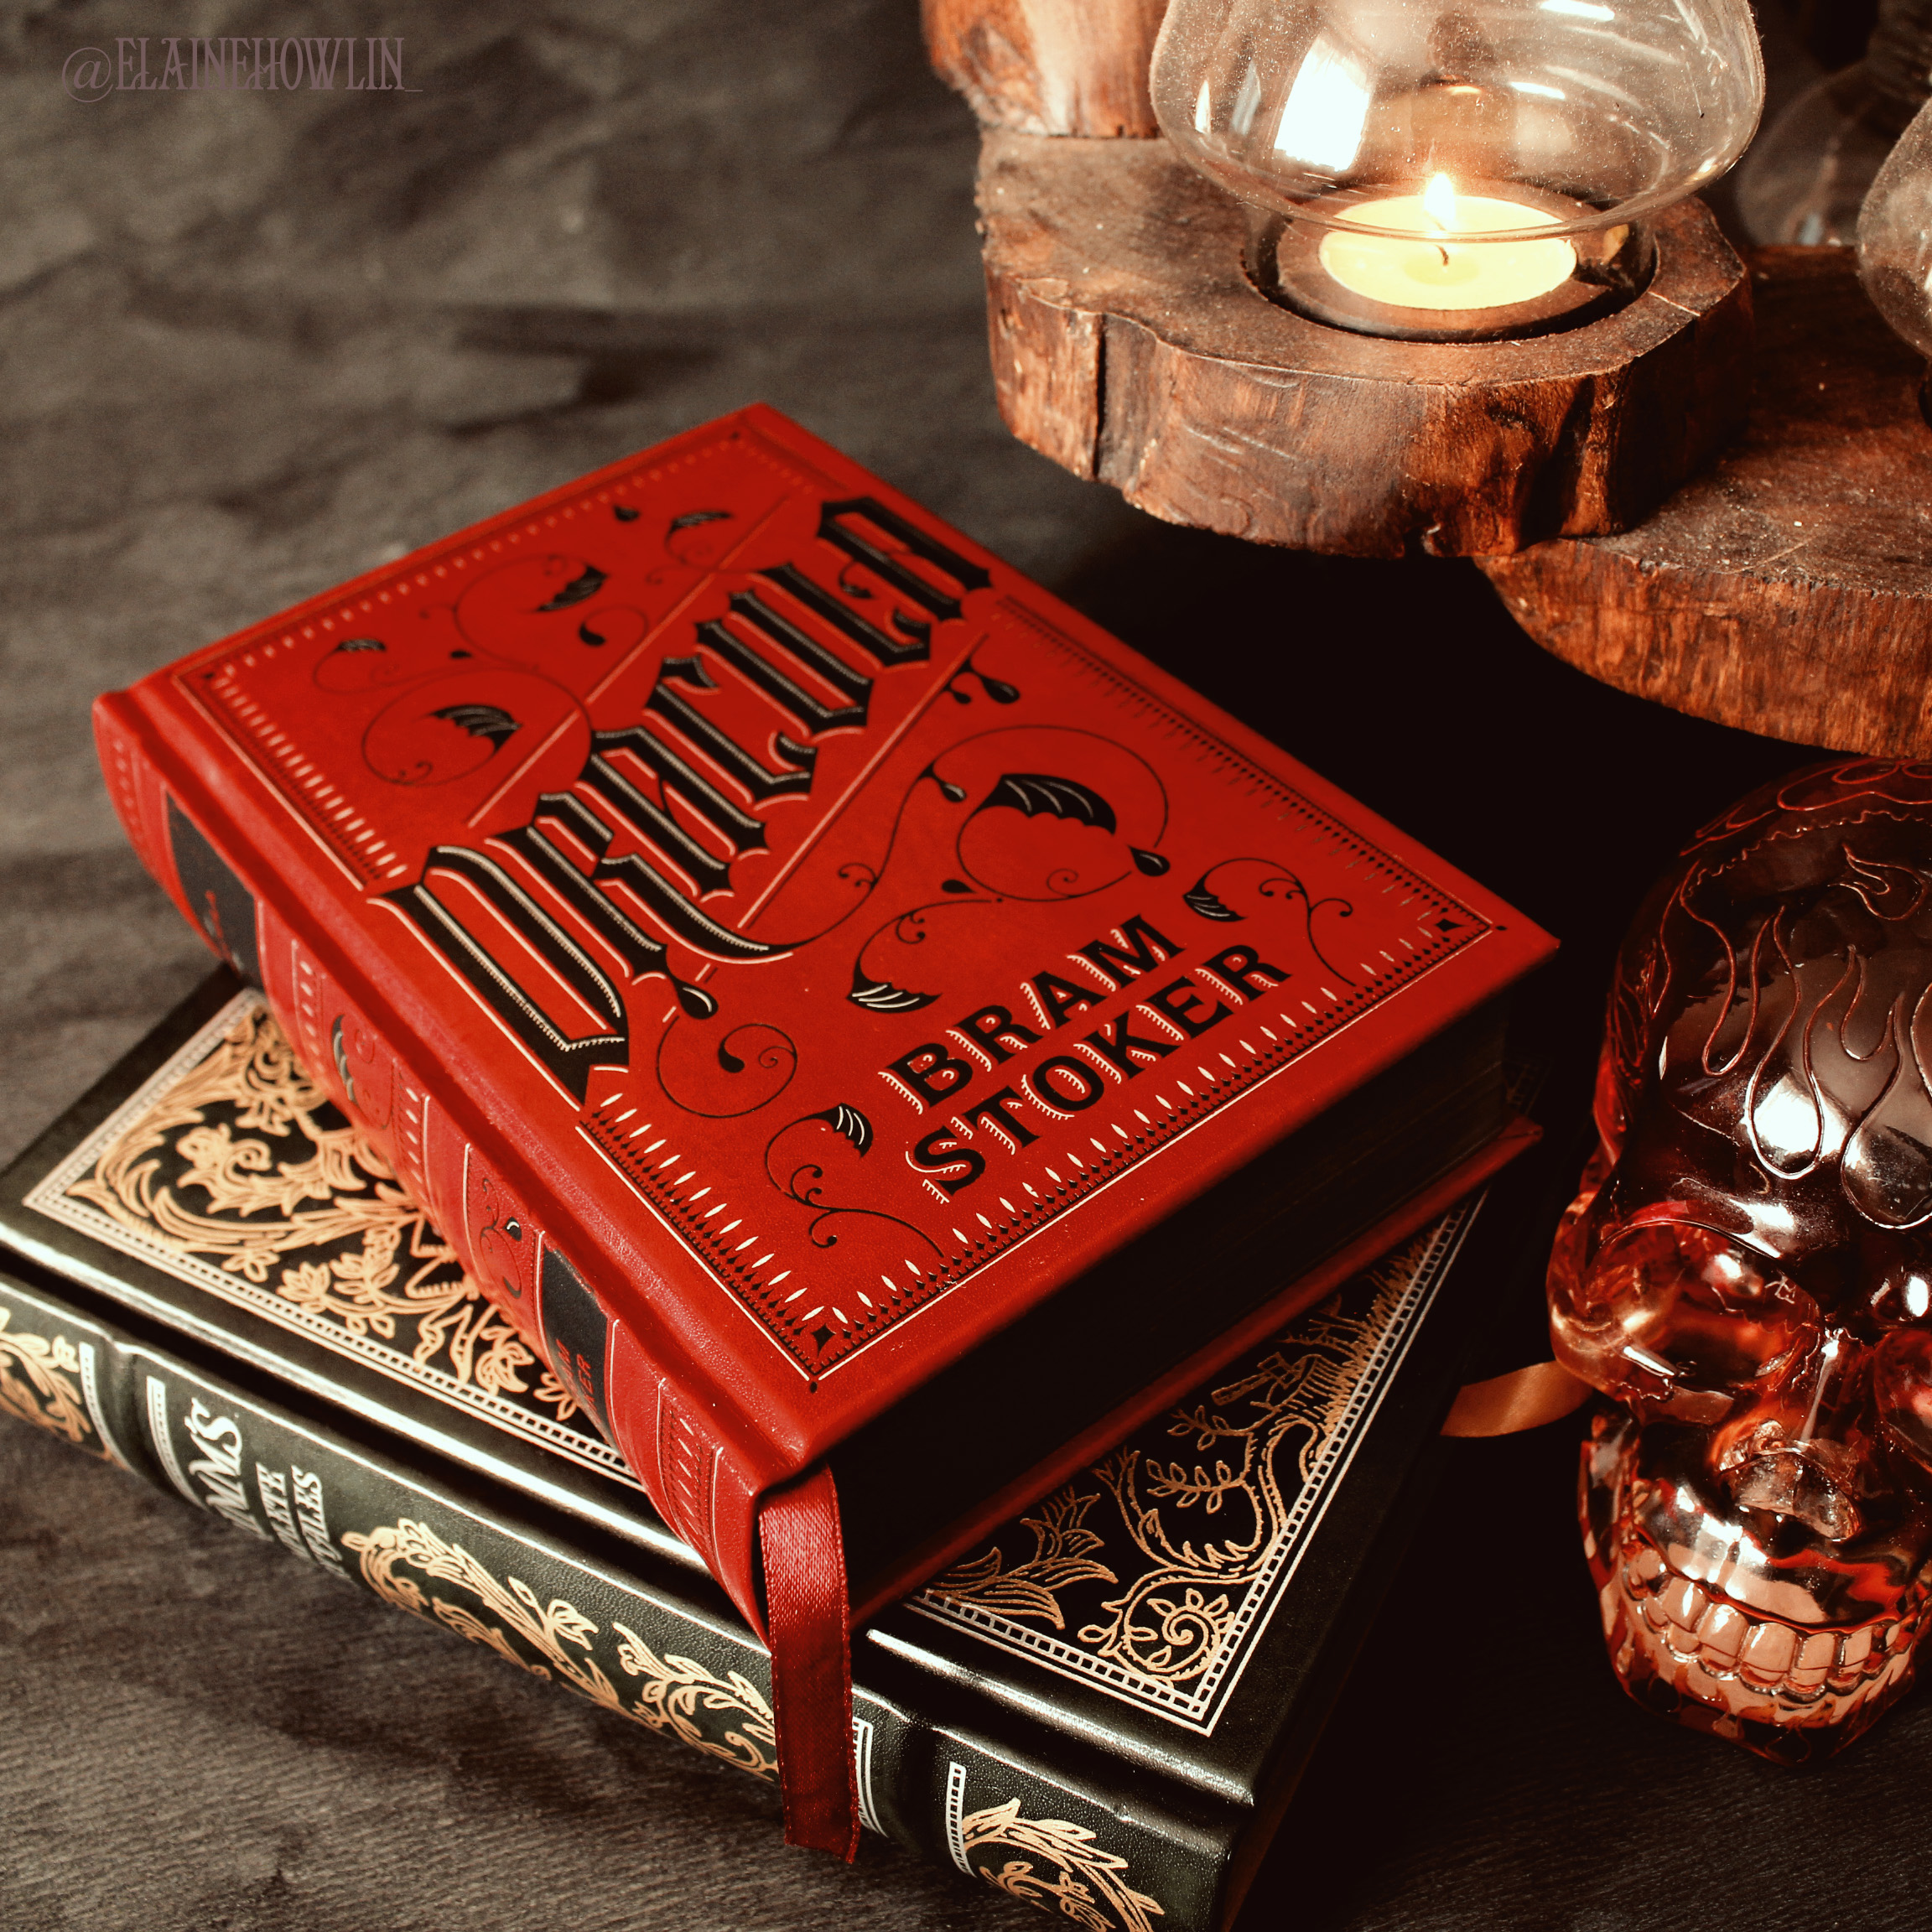 Dracula by Bram Stoker Elaine Howlin Literary Blog Gothic Reads for Autumn